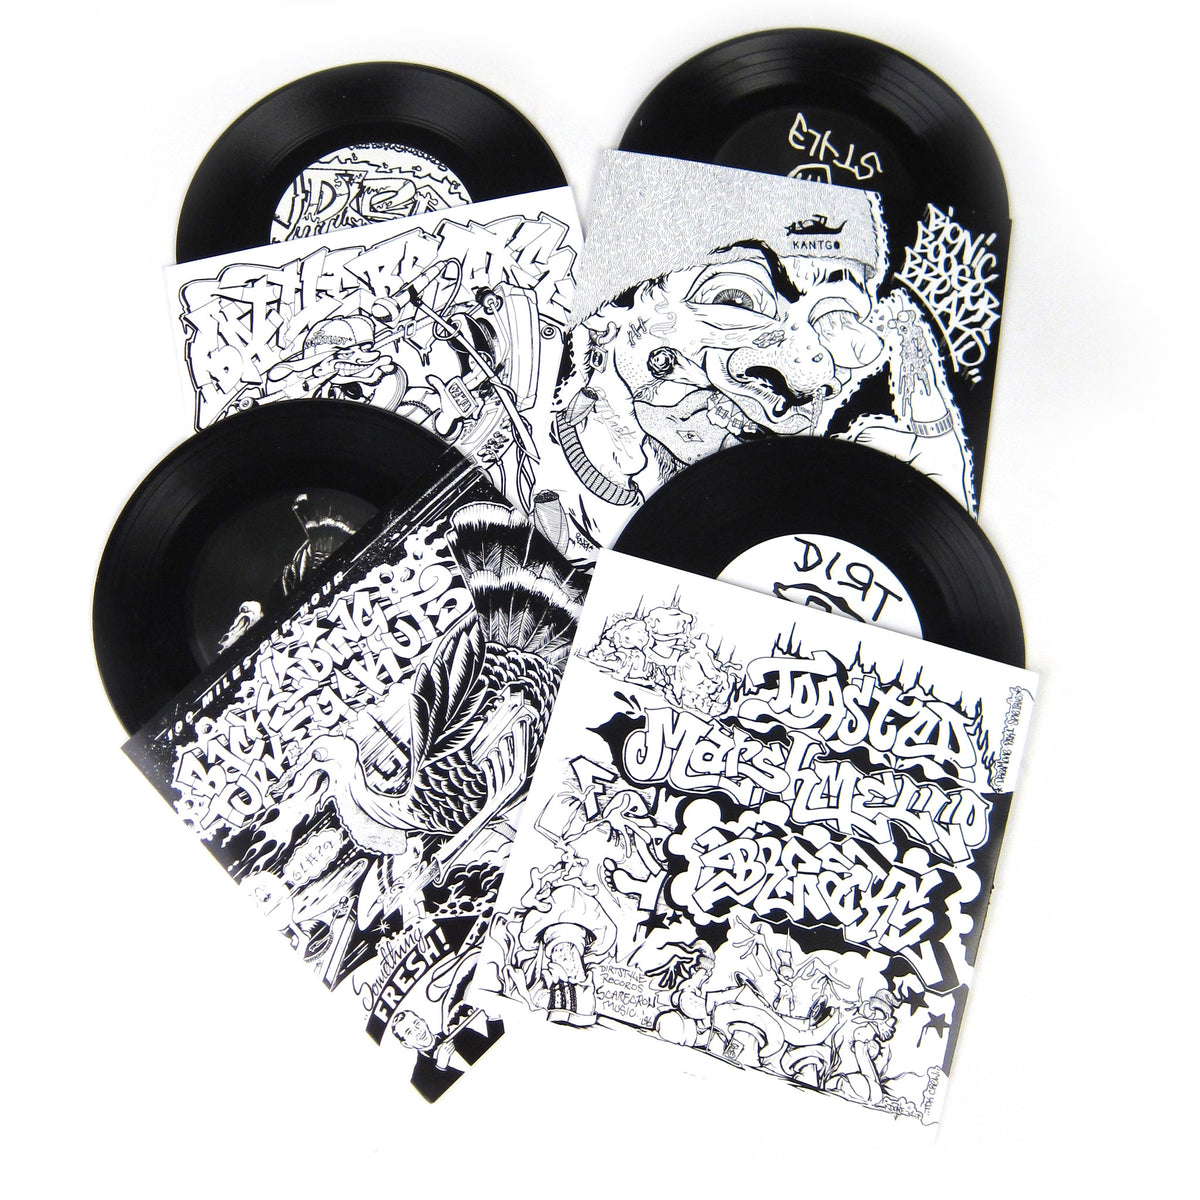 "QBert: Dirtstyle 7"" Set"